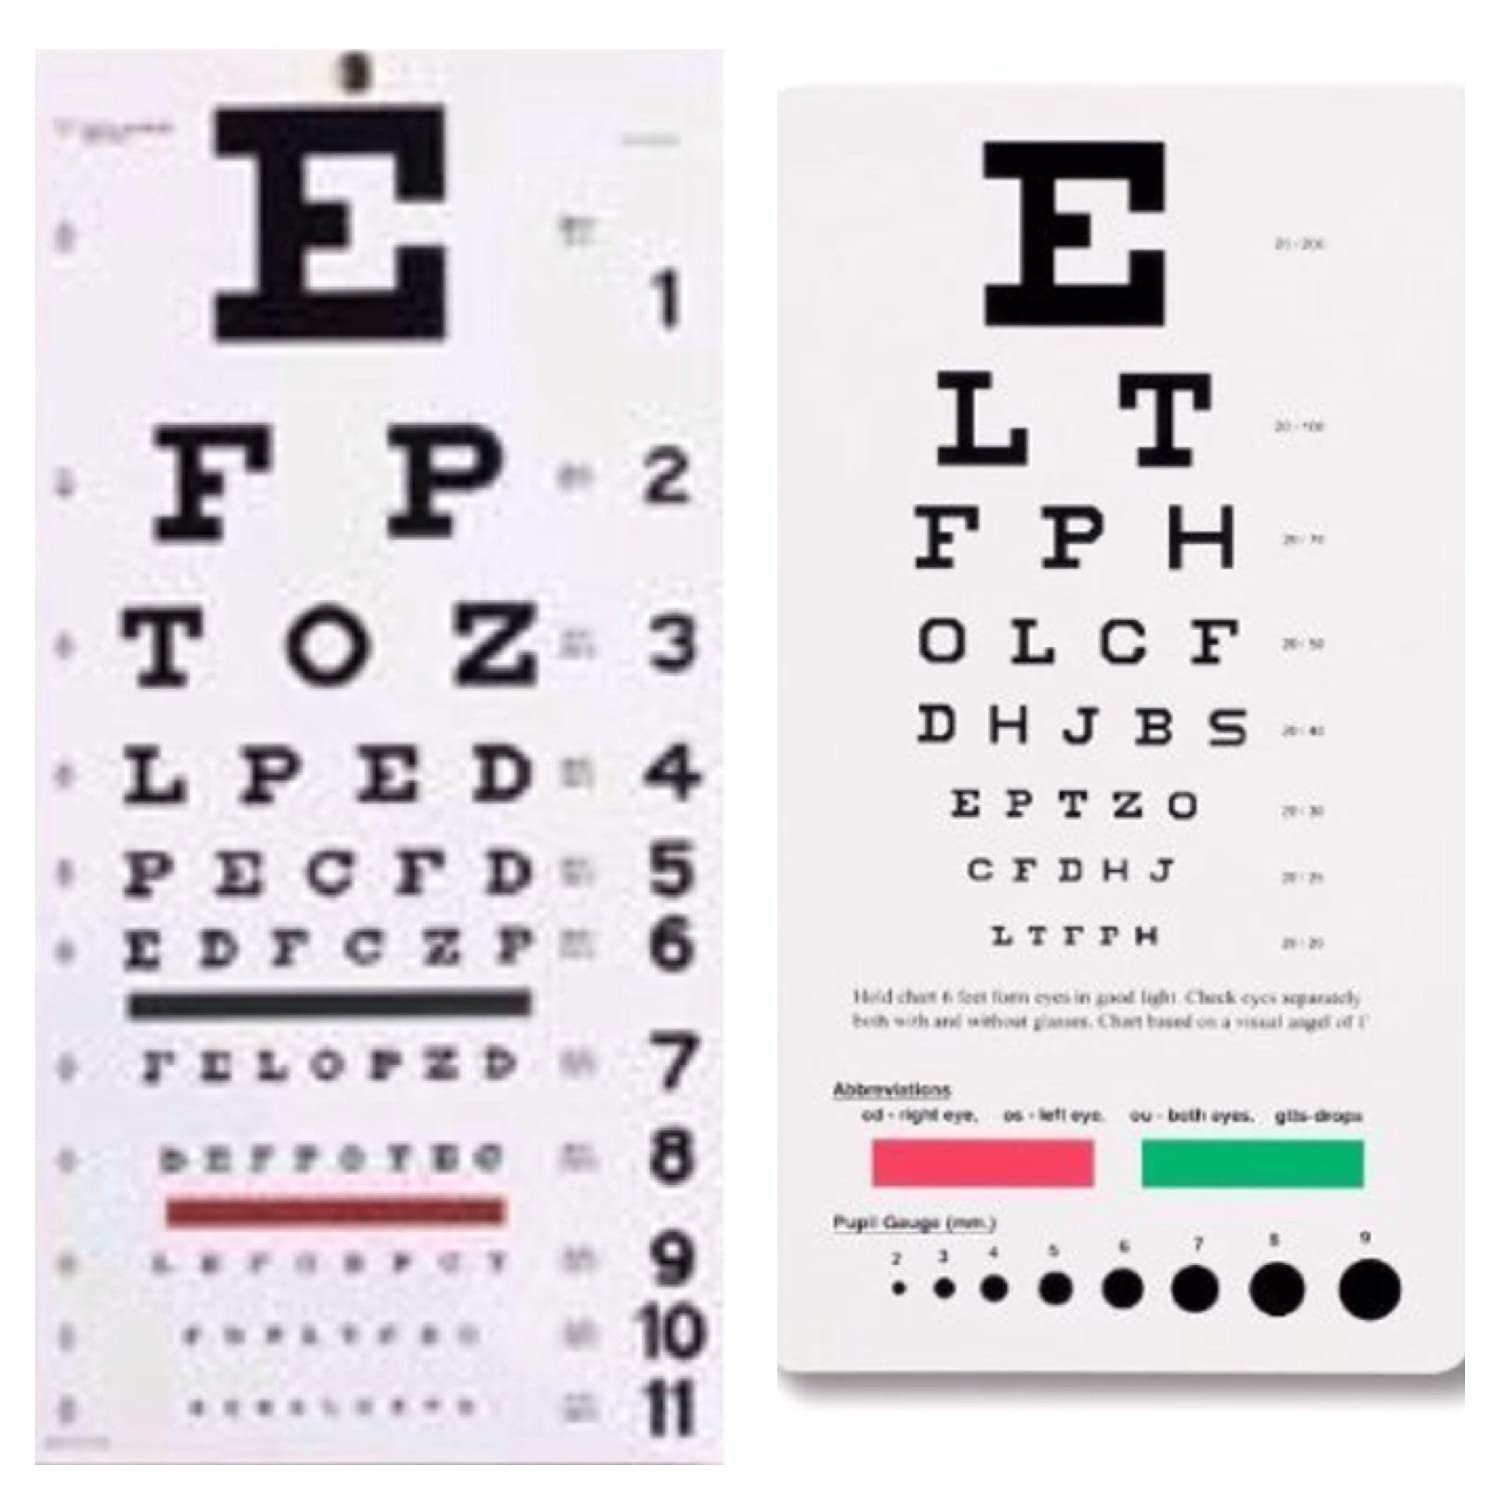 Amazon emi snellen eye wall chart 22 by 11 and snellen eye amazon emi snellen eye wall chart 22 by 11 and snellen eye pocket chart 6 38 by 3 12 2 piece combination pack health personal care nvjuhfo Images